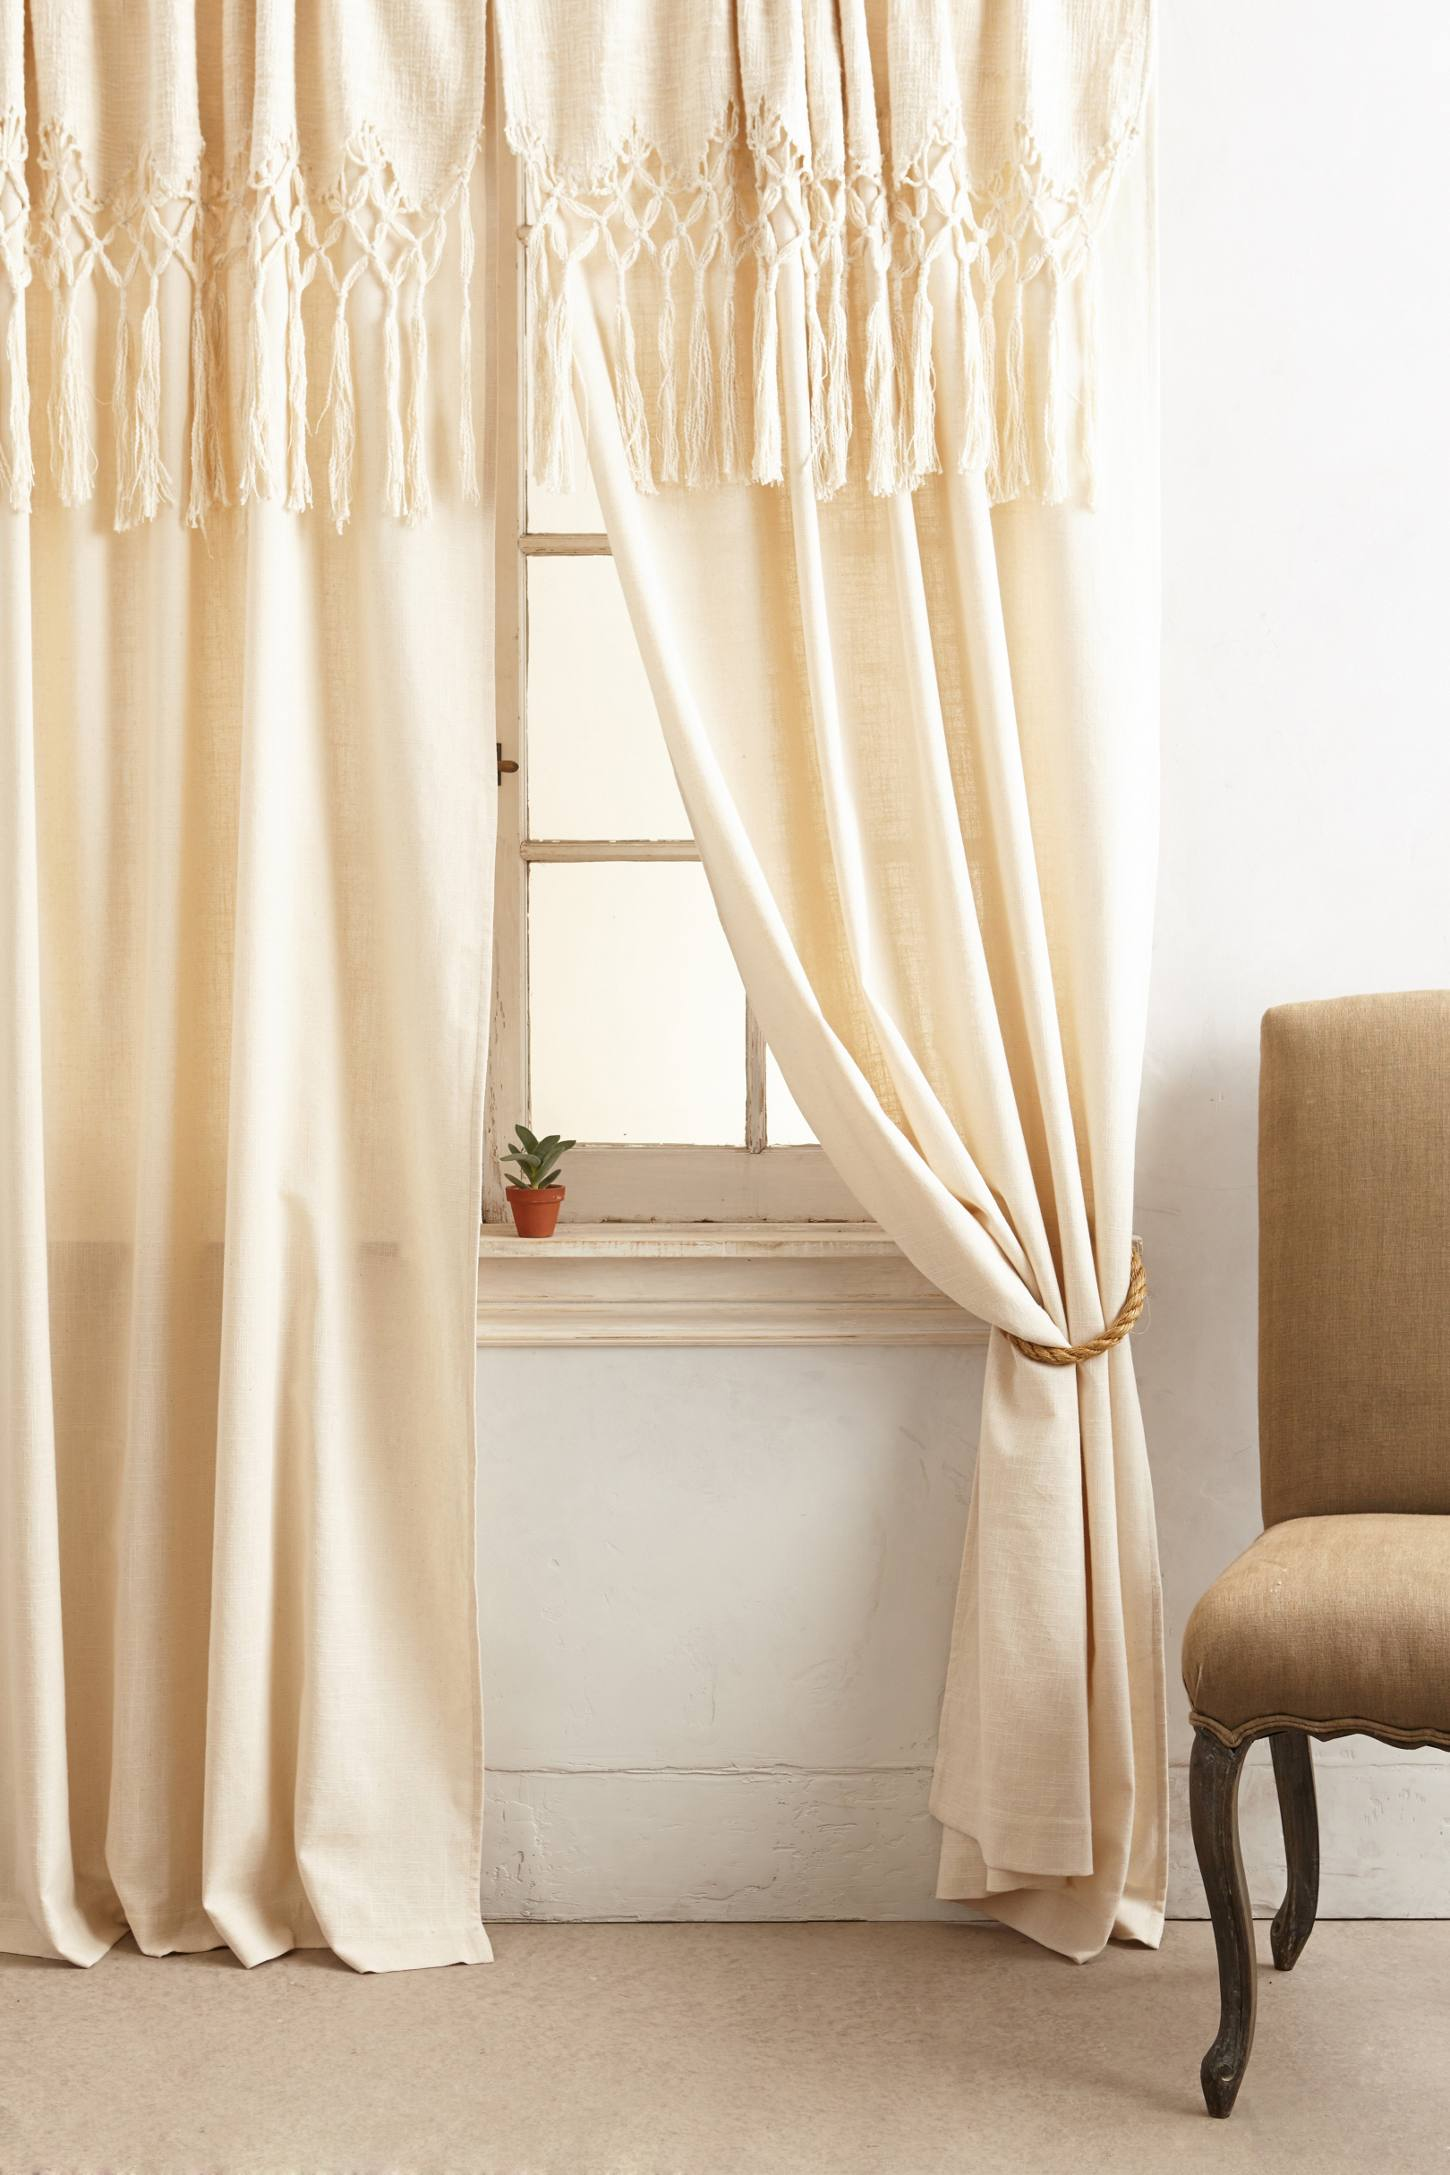 Slide View: 2: Knotted Macrame Curtain